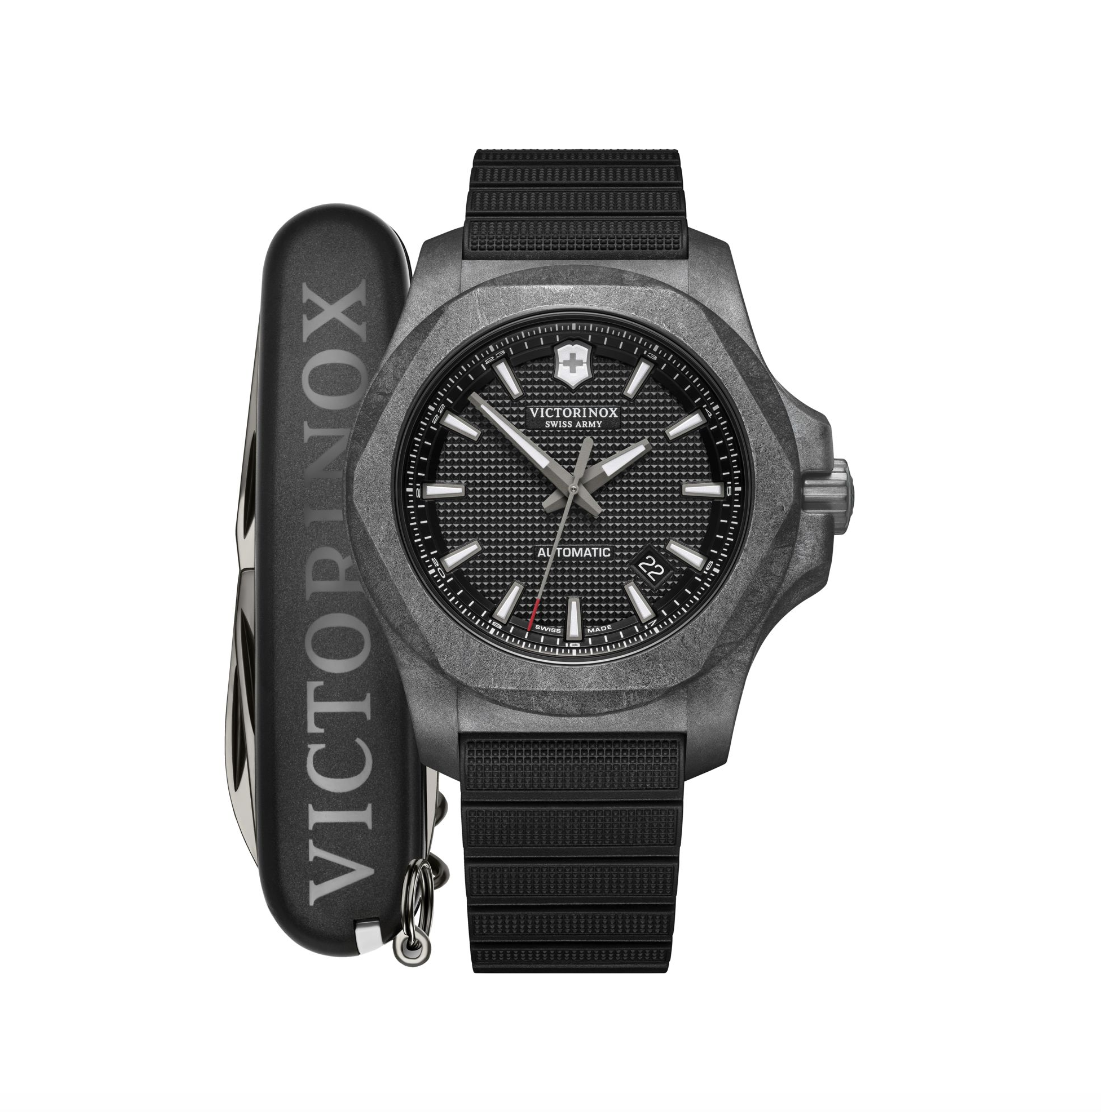 Victorinox Swiss Army I.N.O.X. Carbon Mechanical